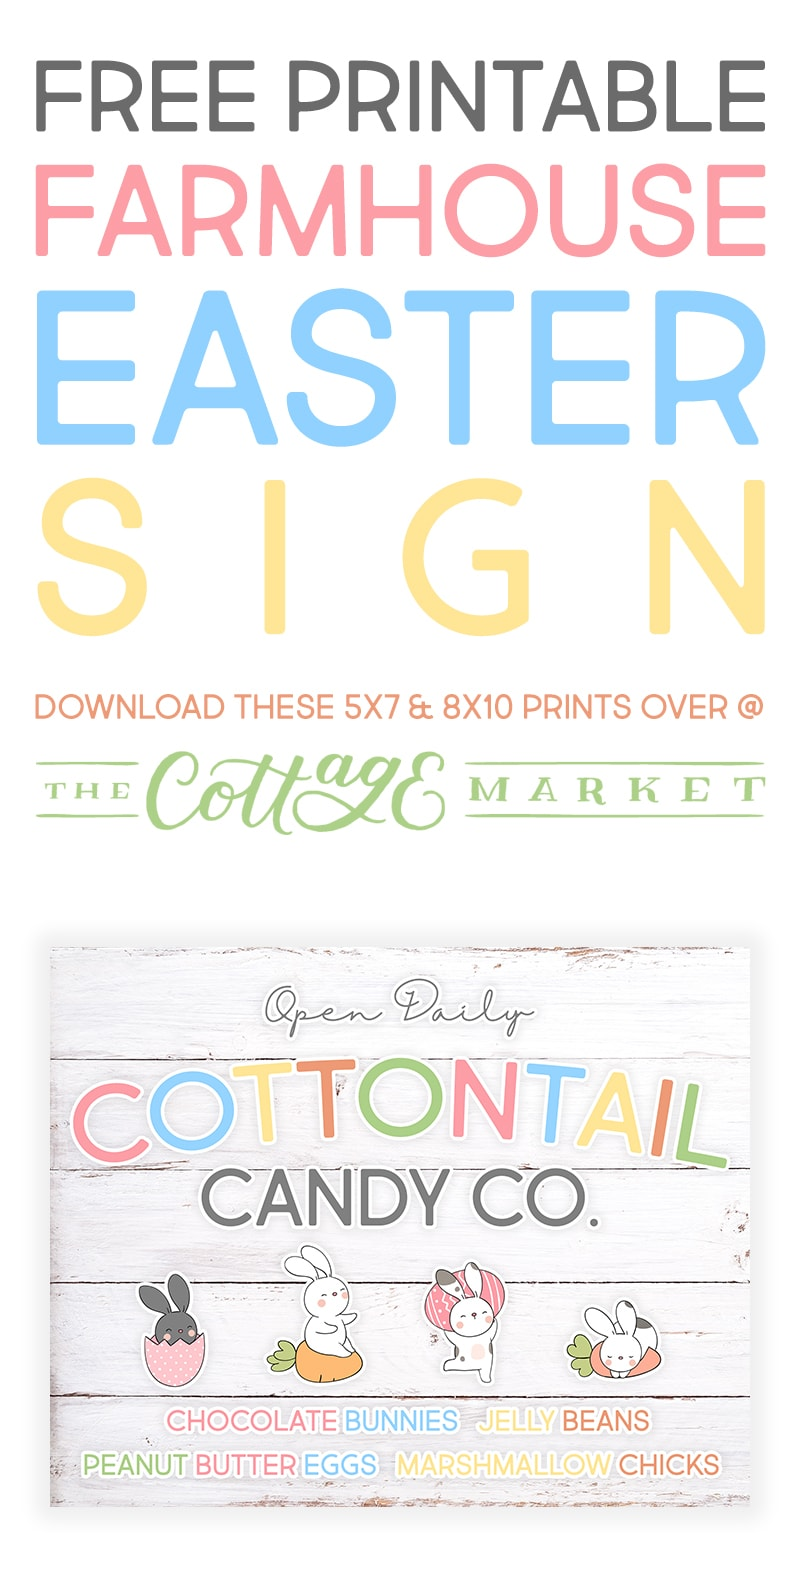 This Free Printable Farmhouse Easter Sign is just what you have been looking for!  It's a perfect piece to add to your Farmhouse Easter Decor plus it's FREE!